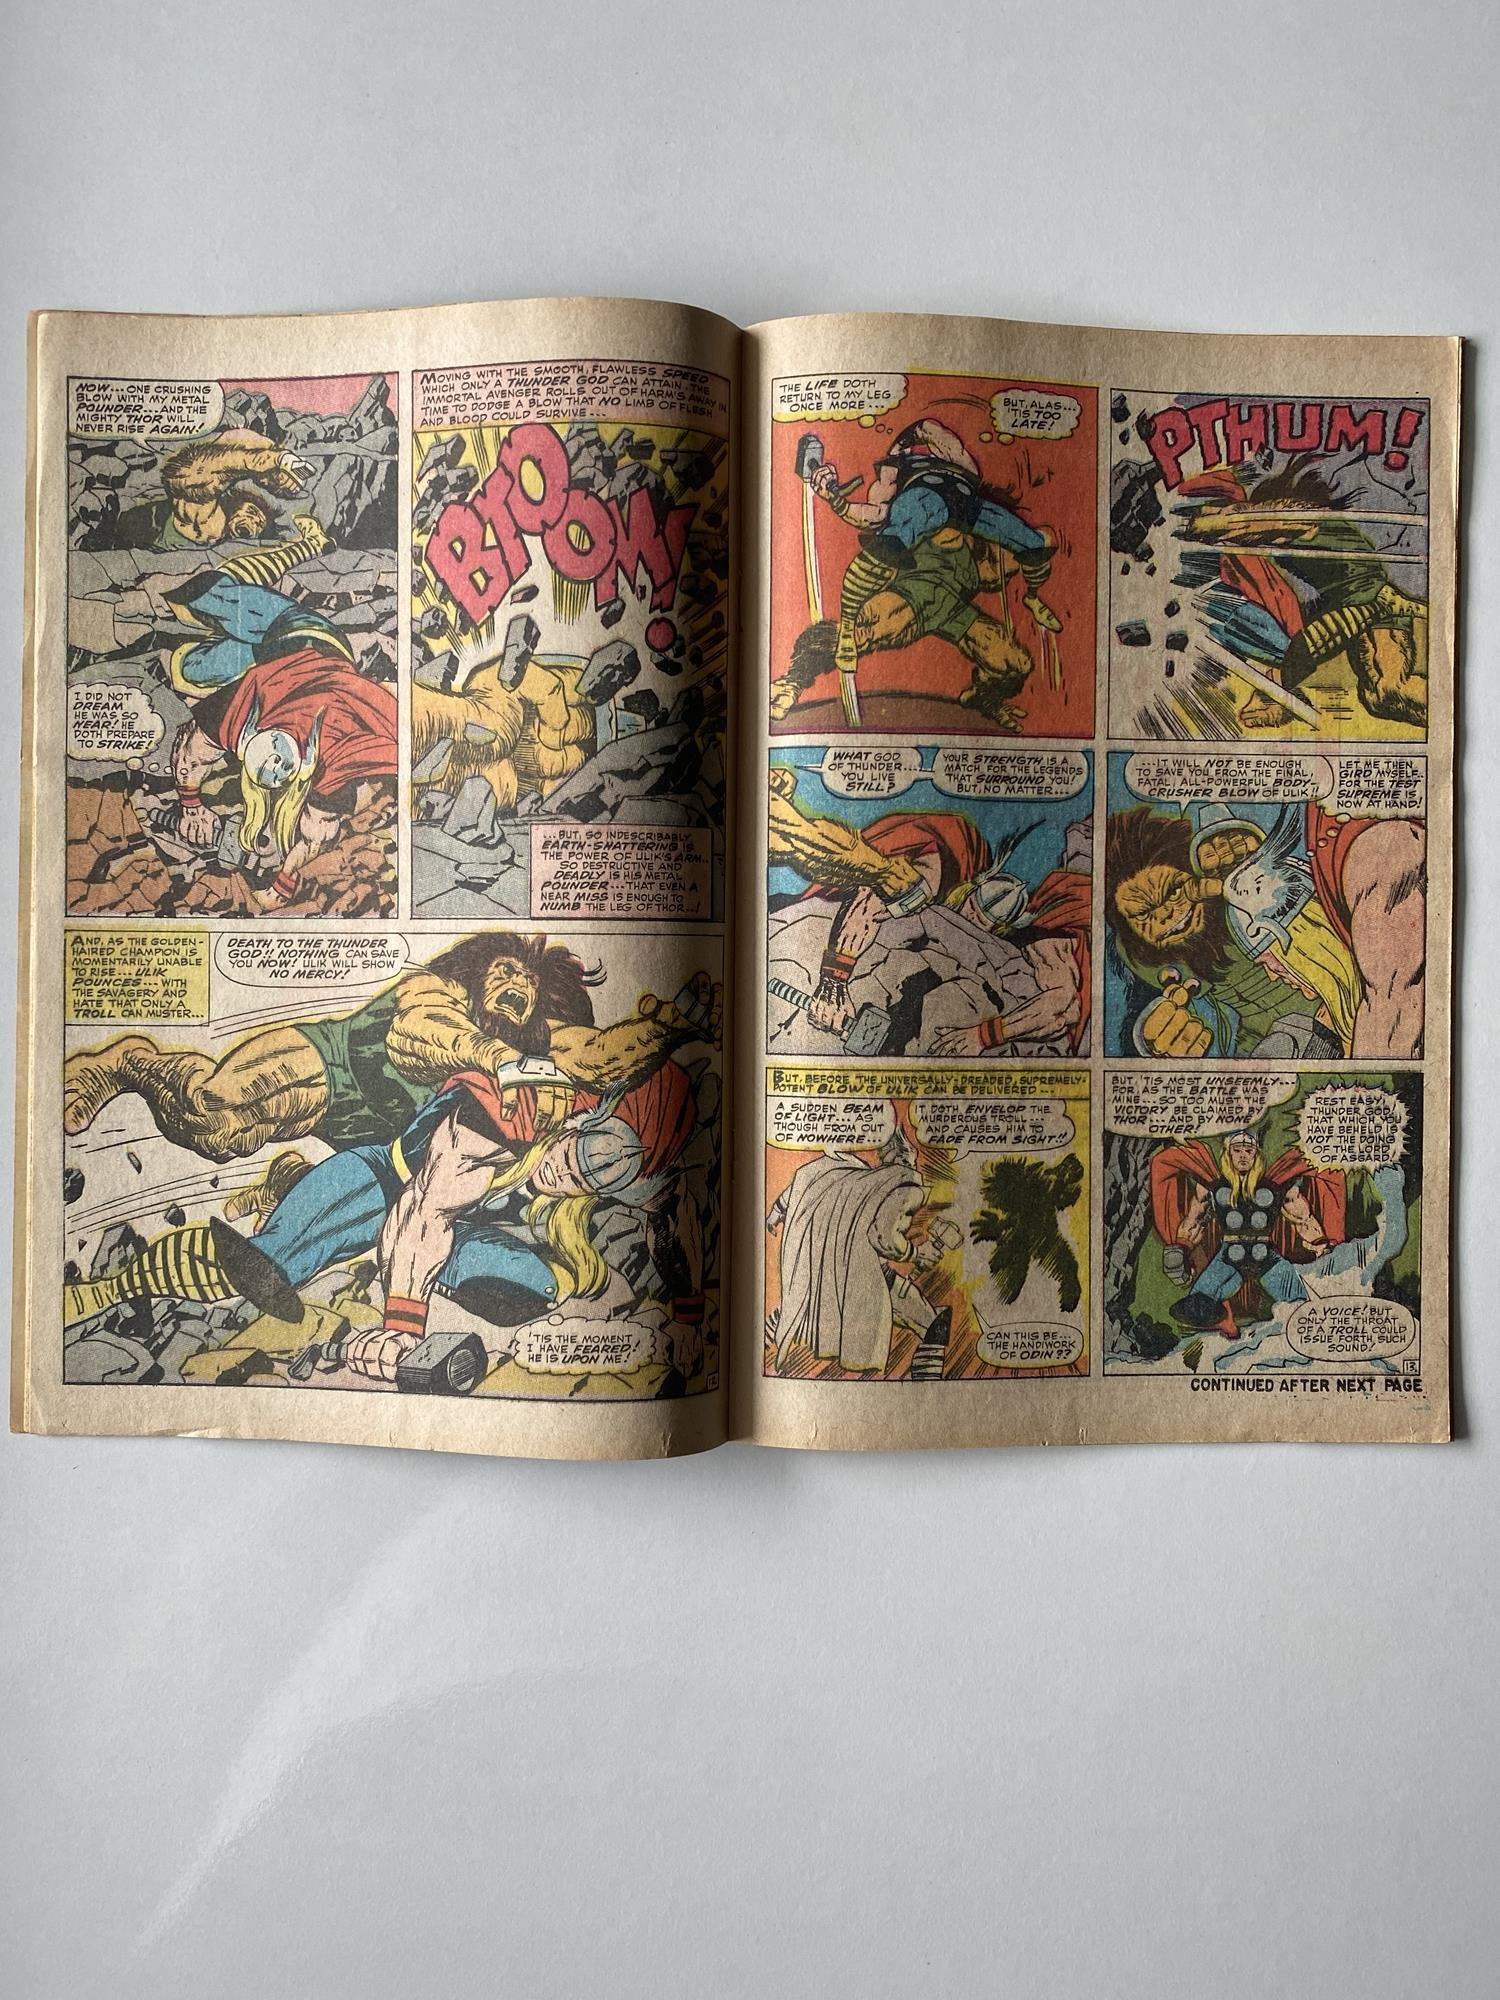 Lot 20 - THOR # 137 (1967 - MARVEL - Pence Copy) - First appearance of ULIK - Jack Kirby cover and interior